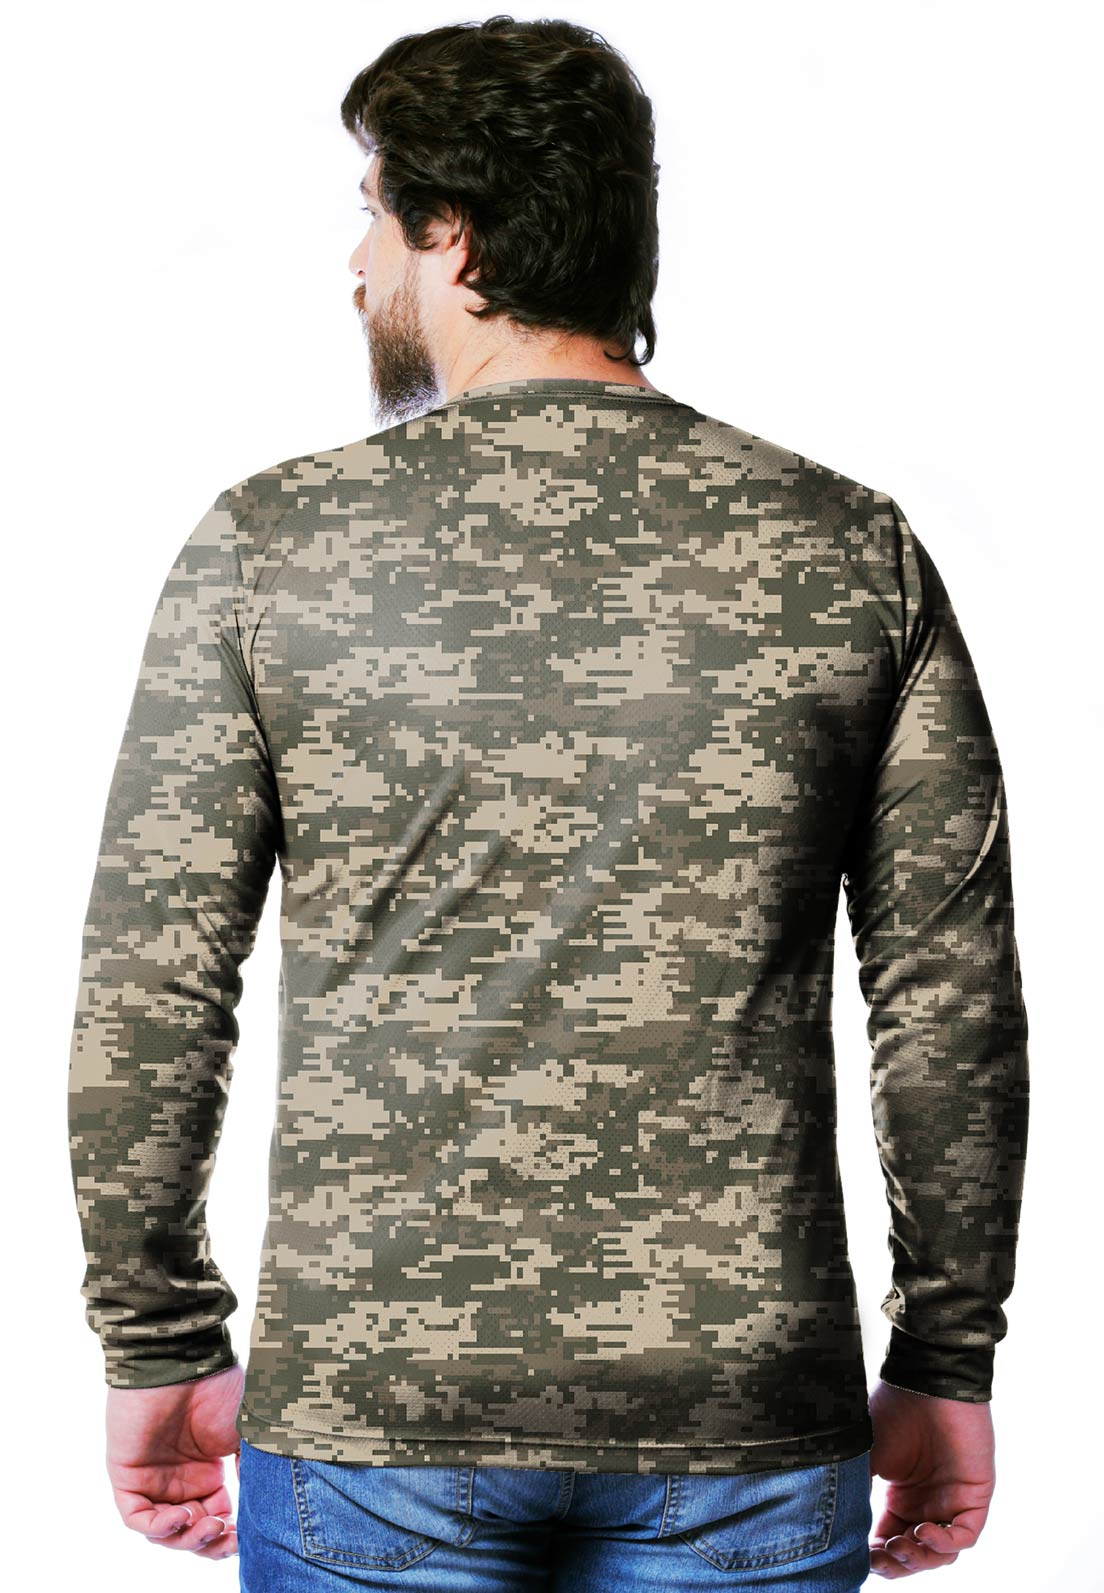 CAMISETA CAMUFLADA DIGITAL ACU MANGA LONGA MASCULINA  - REAL HUNTER OUTDOORS